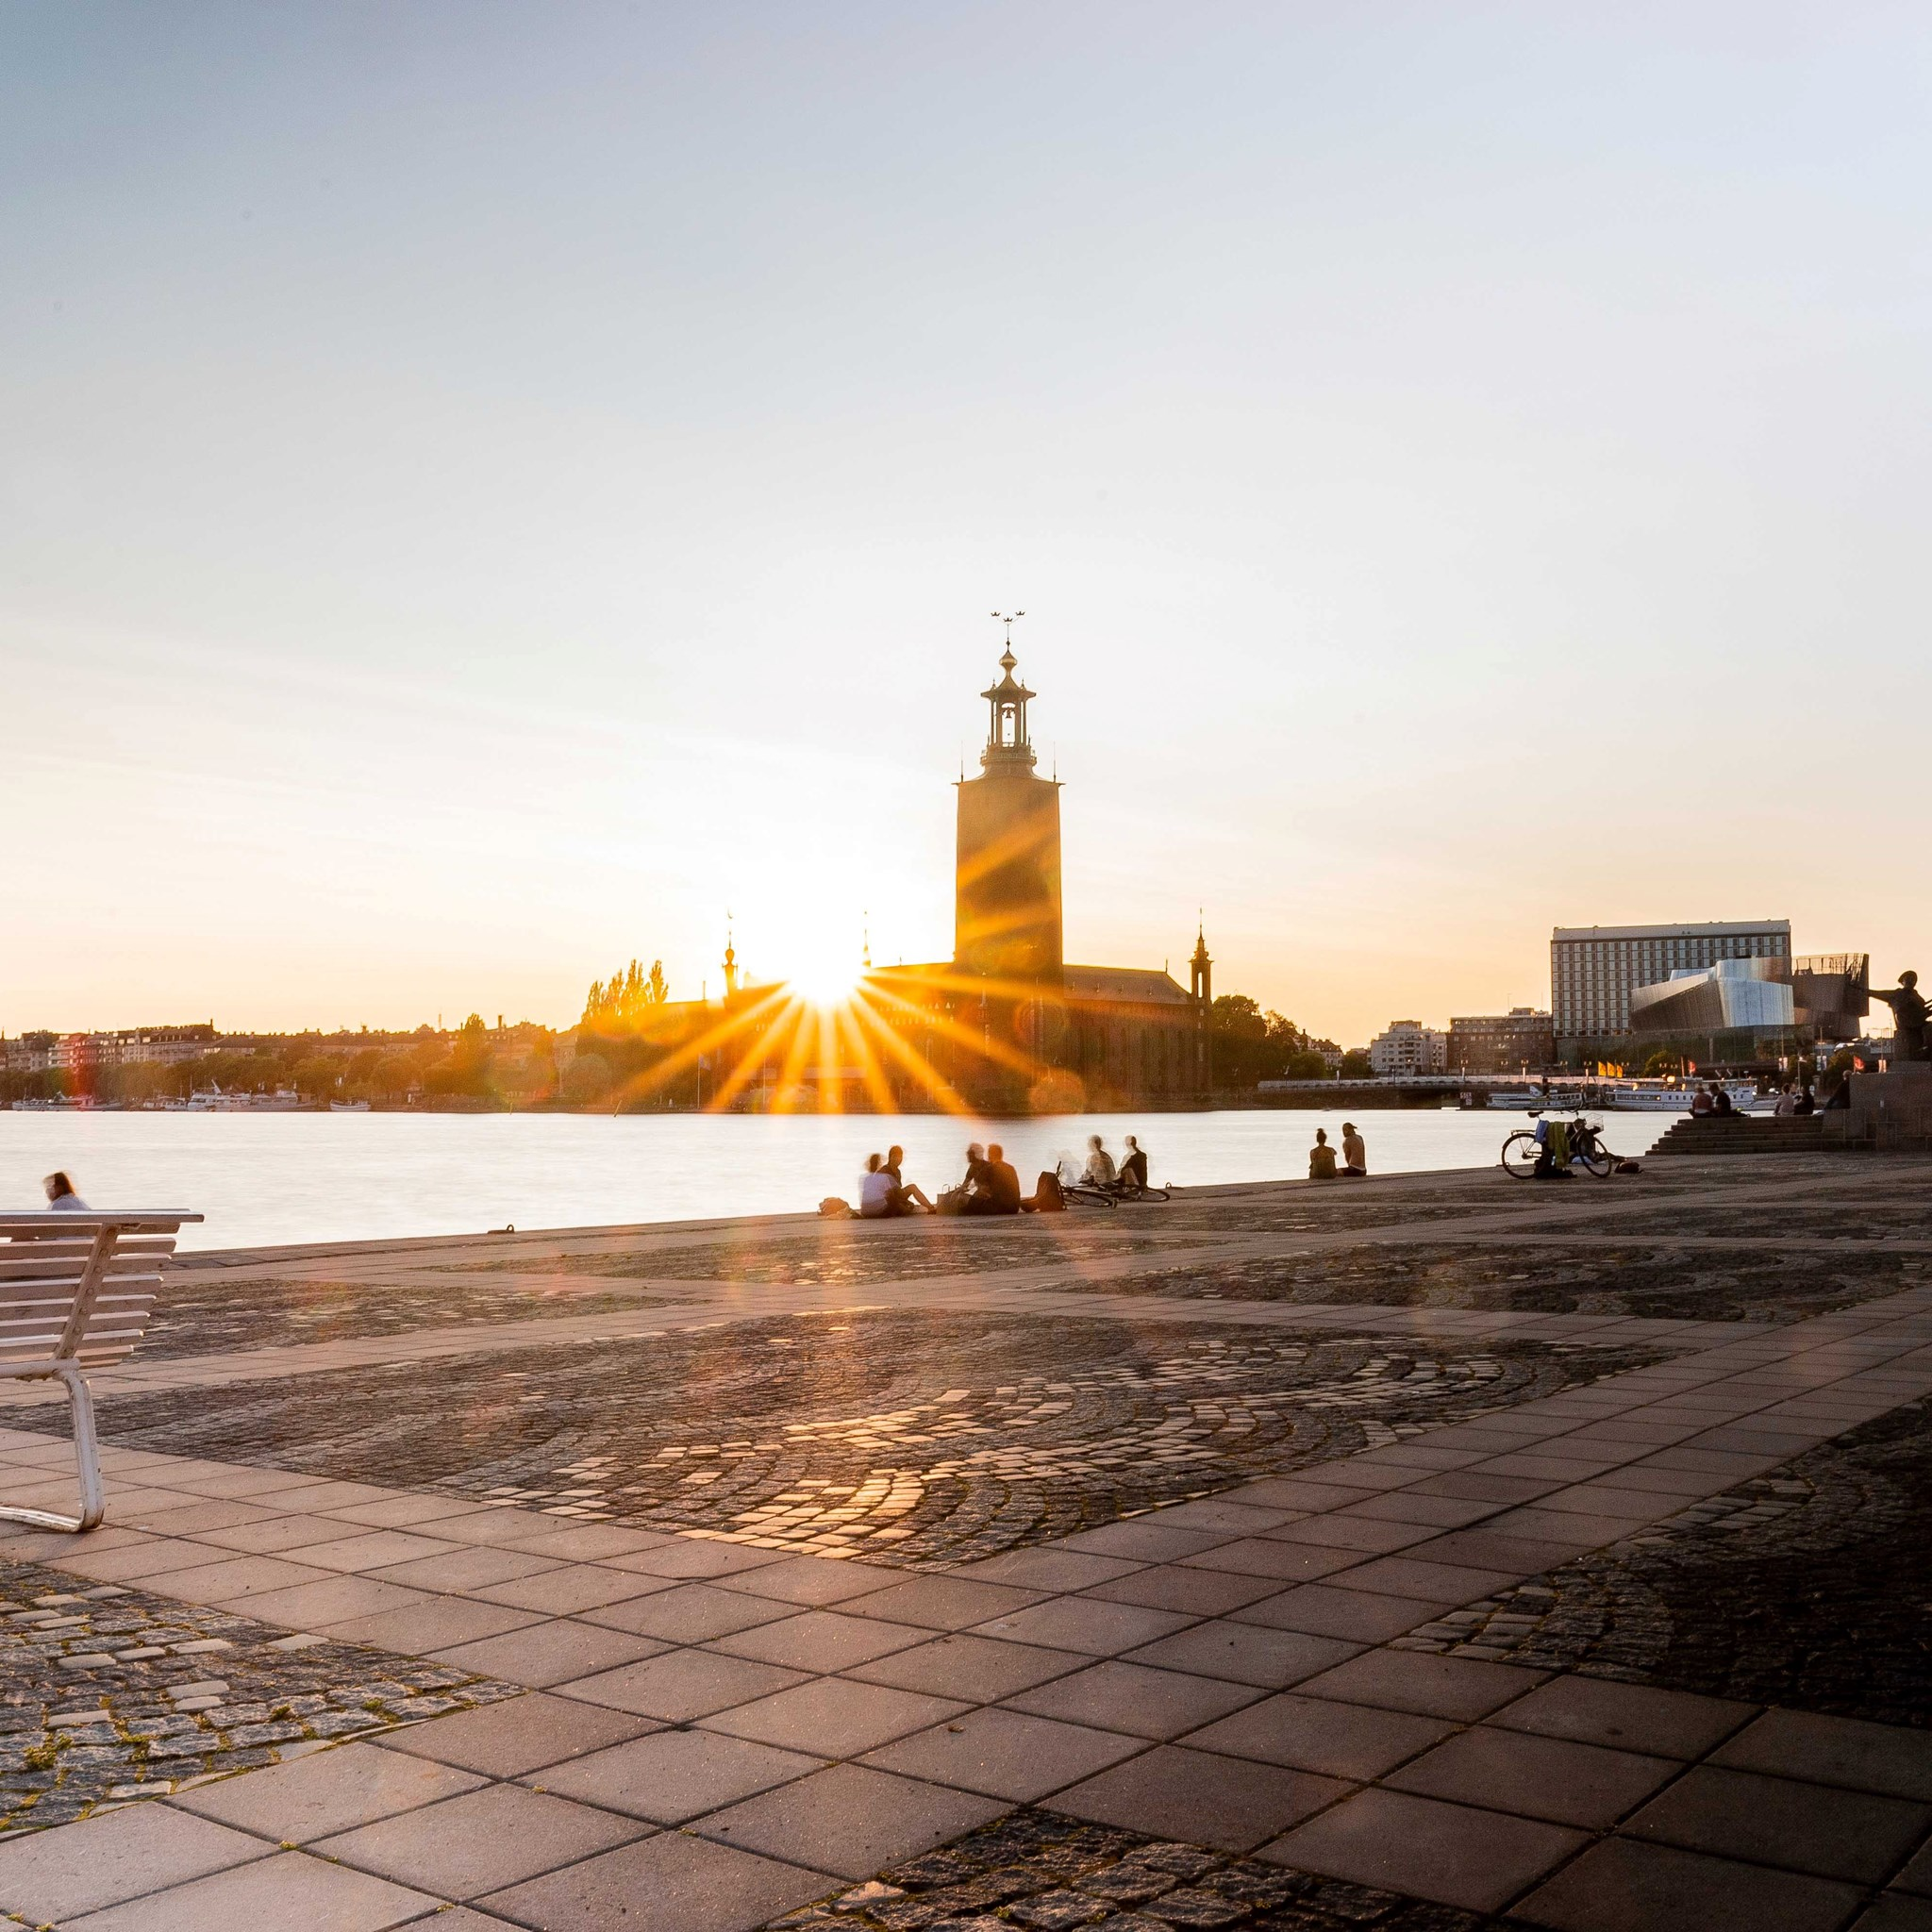 Picture of Stockholm by Thorben Mielke on Unsplash.